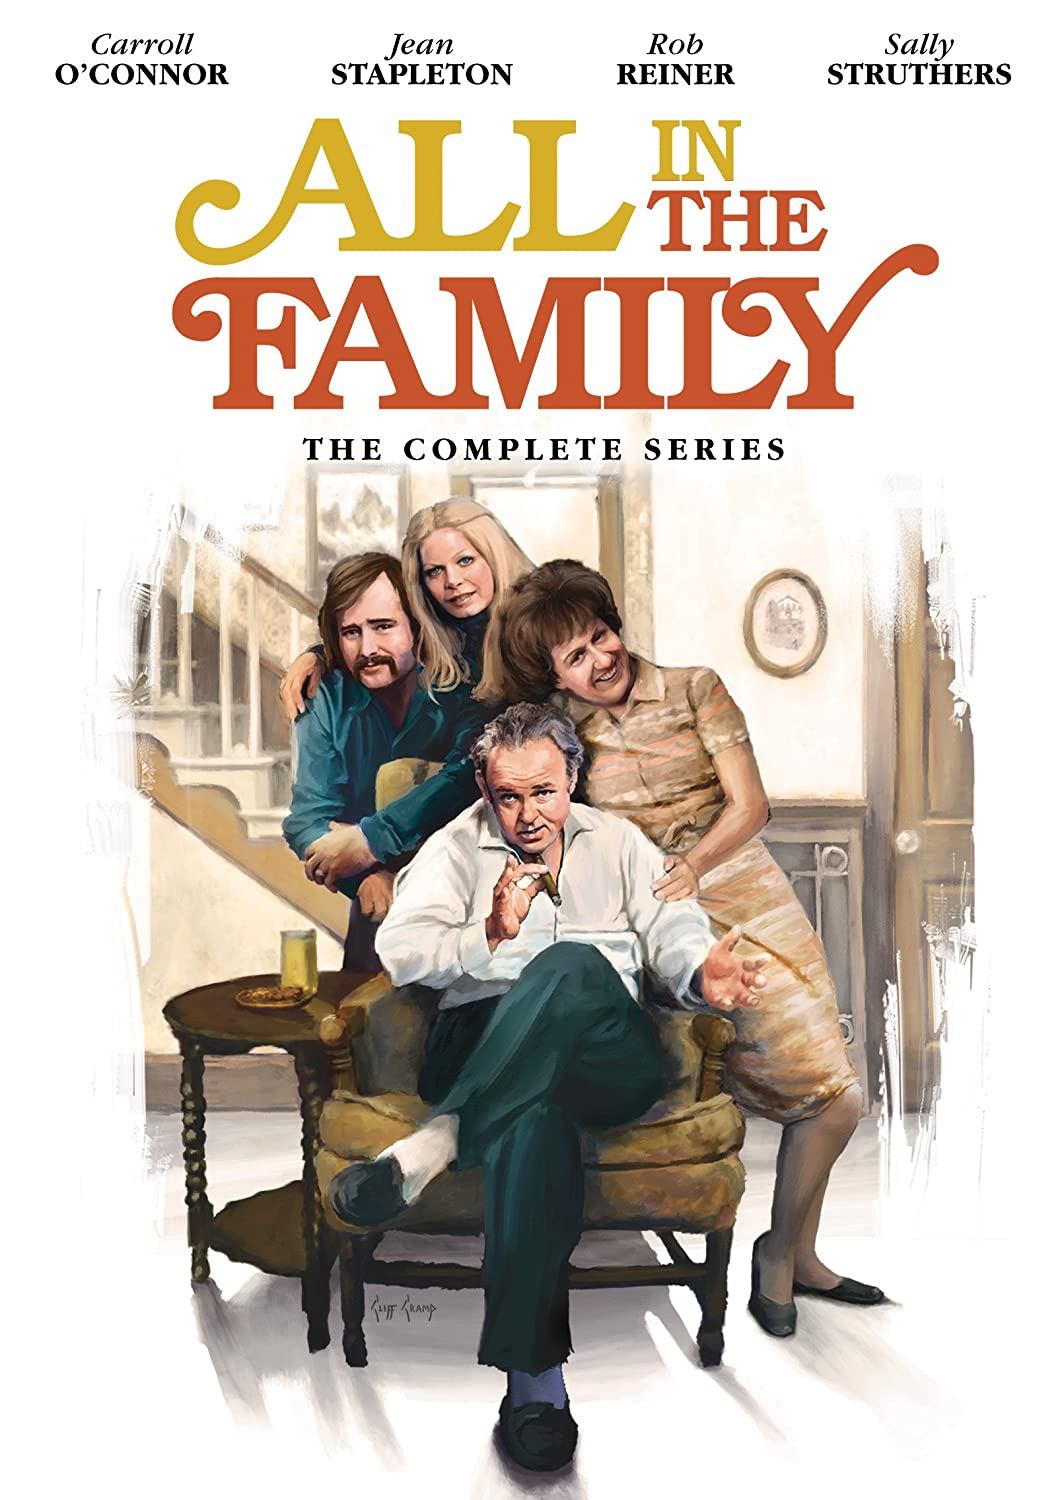 All in the Family DVD set - Vintage TV show